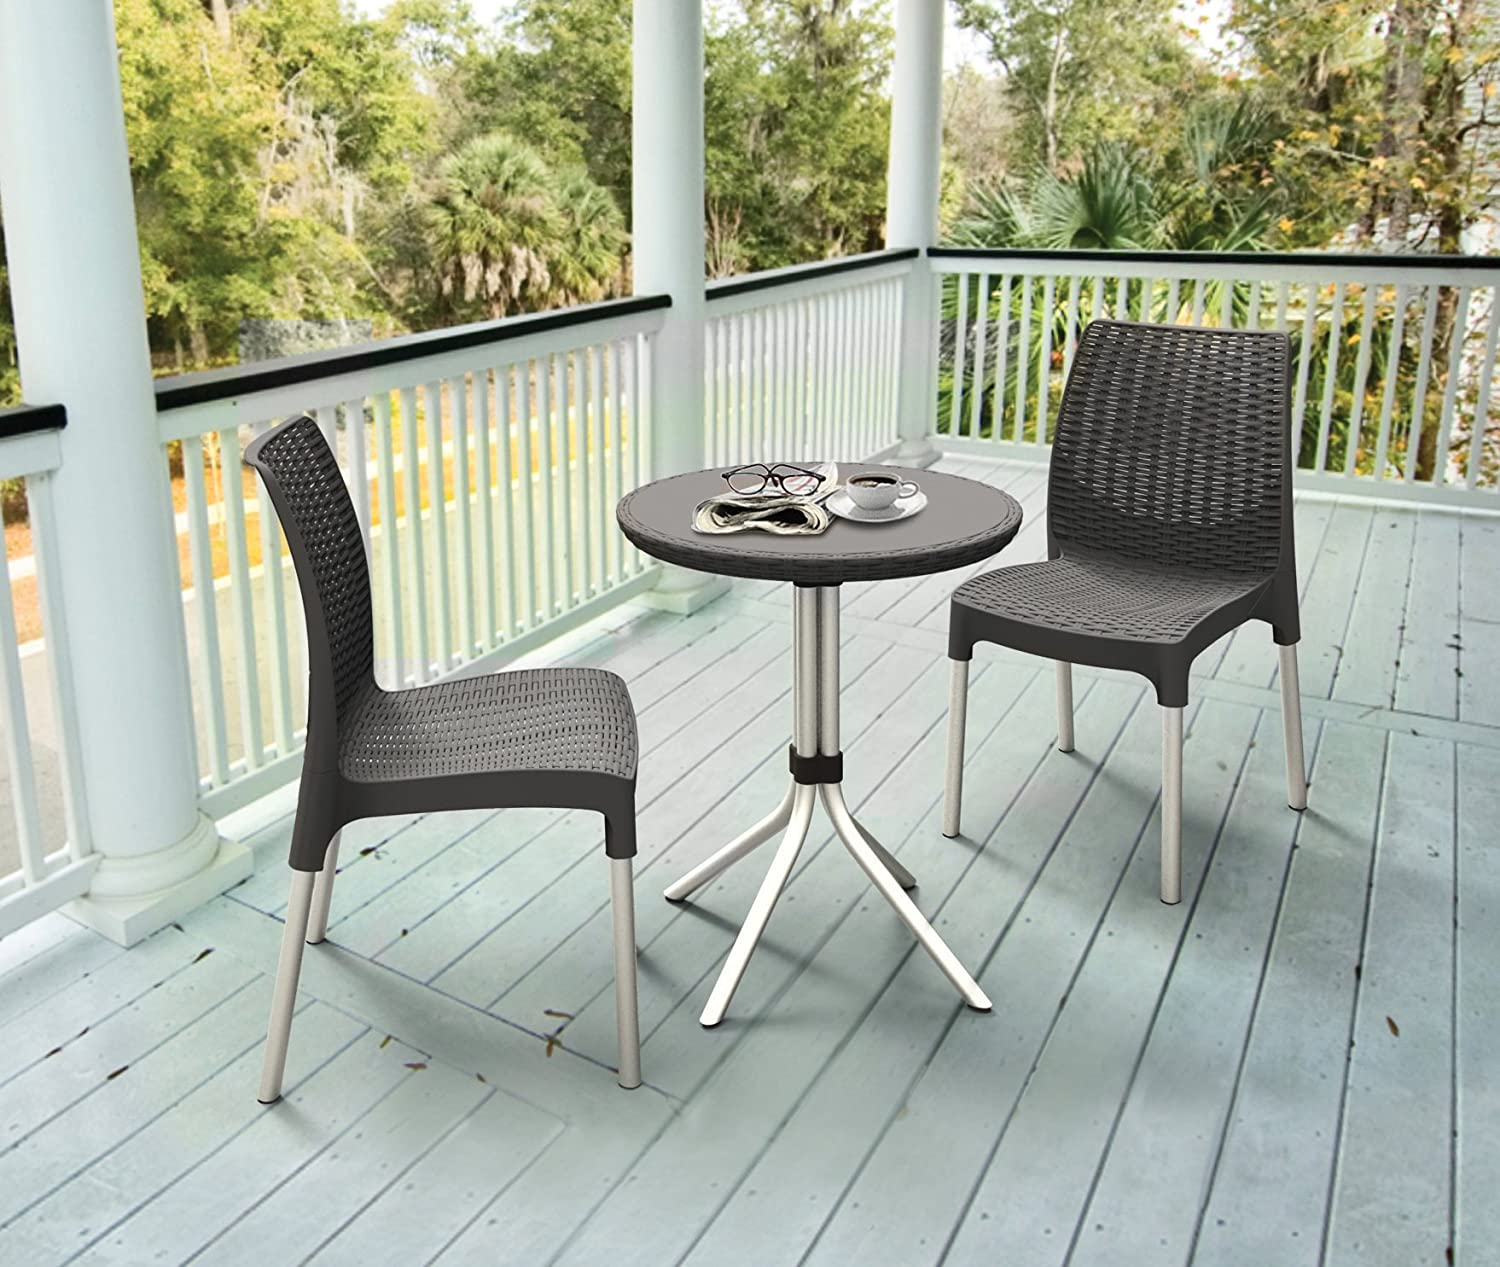 Amazon com  Keter Chelsea 3 Piece Resin Outdoor Patio Furniture Dining Bistro  Set with Patio Table and Chairs  Charcoal  Garden   Outdoor. Amazon com  Keter Chelsea 3 Piece Resin Outdoor Patio Furniture